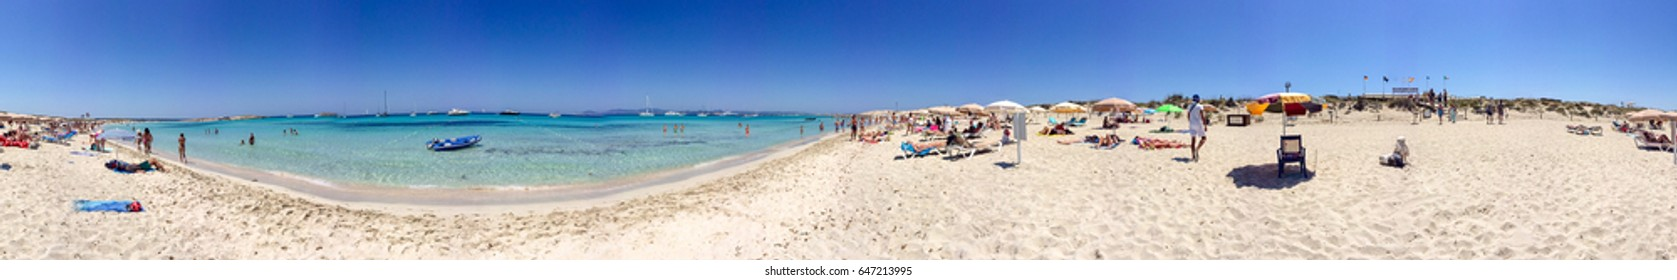 FORMENTERA, SPAIN - JUNE 2015: Tourists enjoy wonderful island beach, panoramic view. Formentera is a famous tourist destination in Spain.